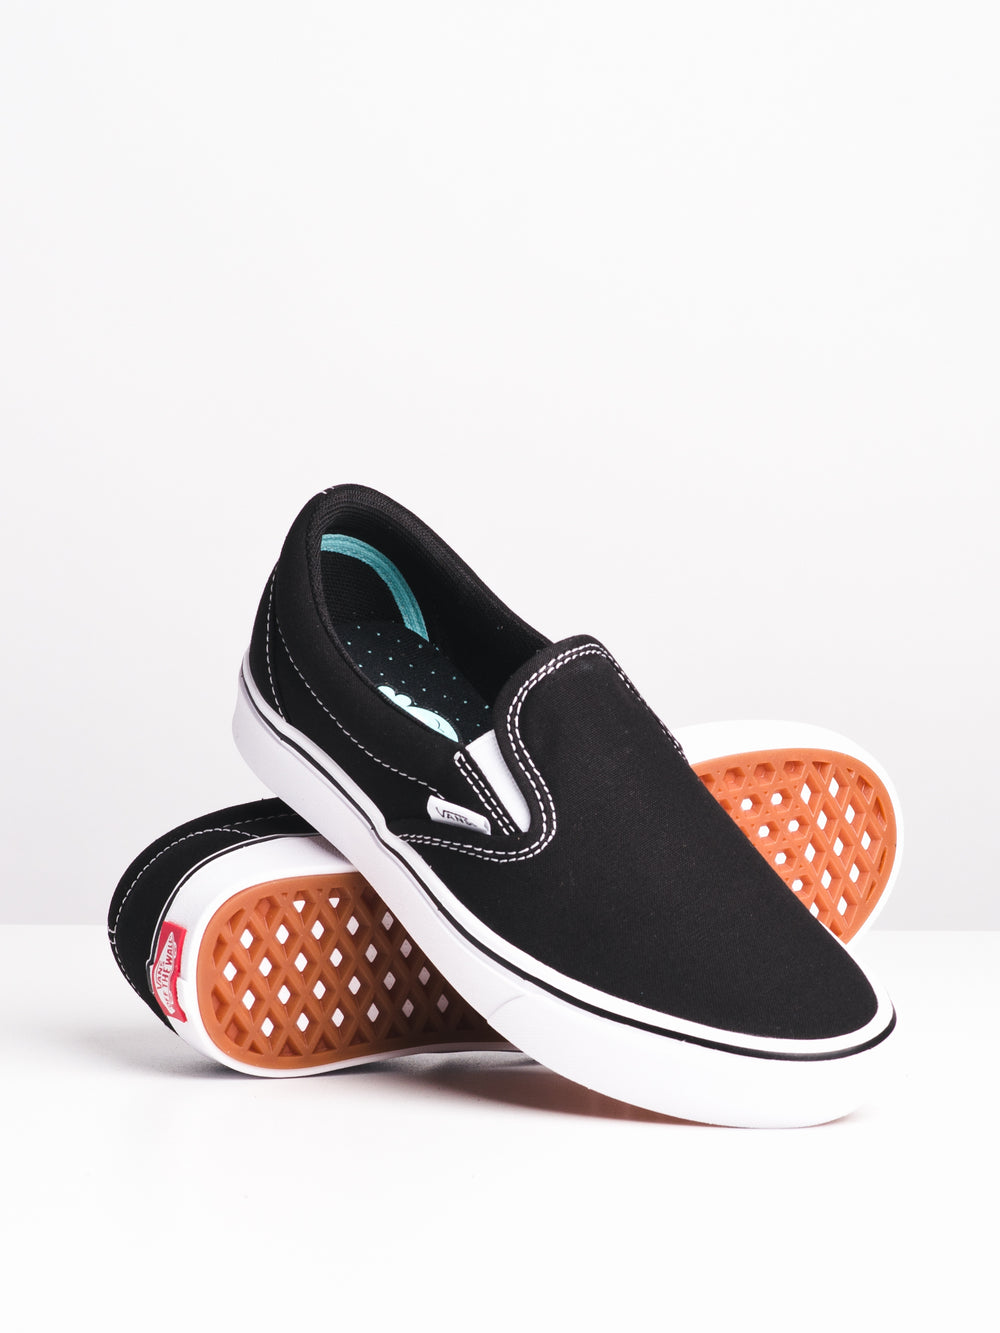 WOMENS COMFYCUSH SLIP ON - BLK/WHT